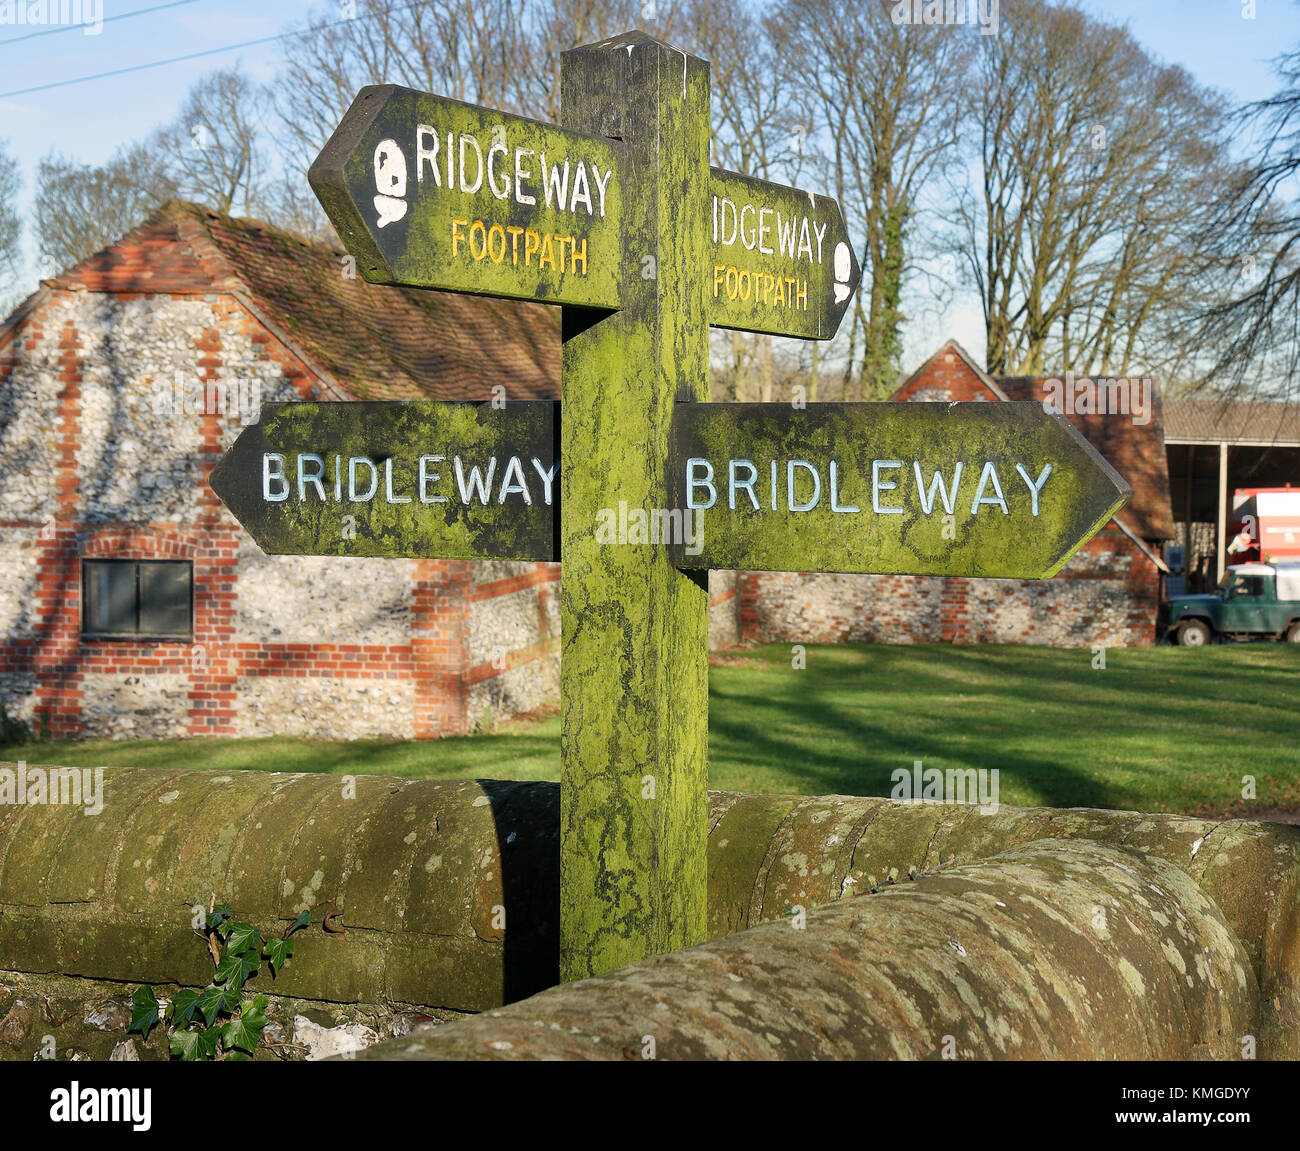 Wooden footpath and bridleway signpost - Stock Image